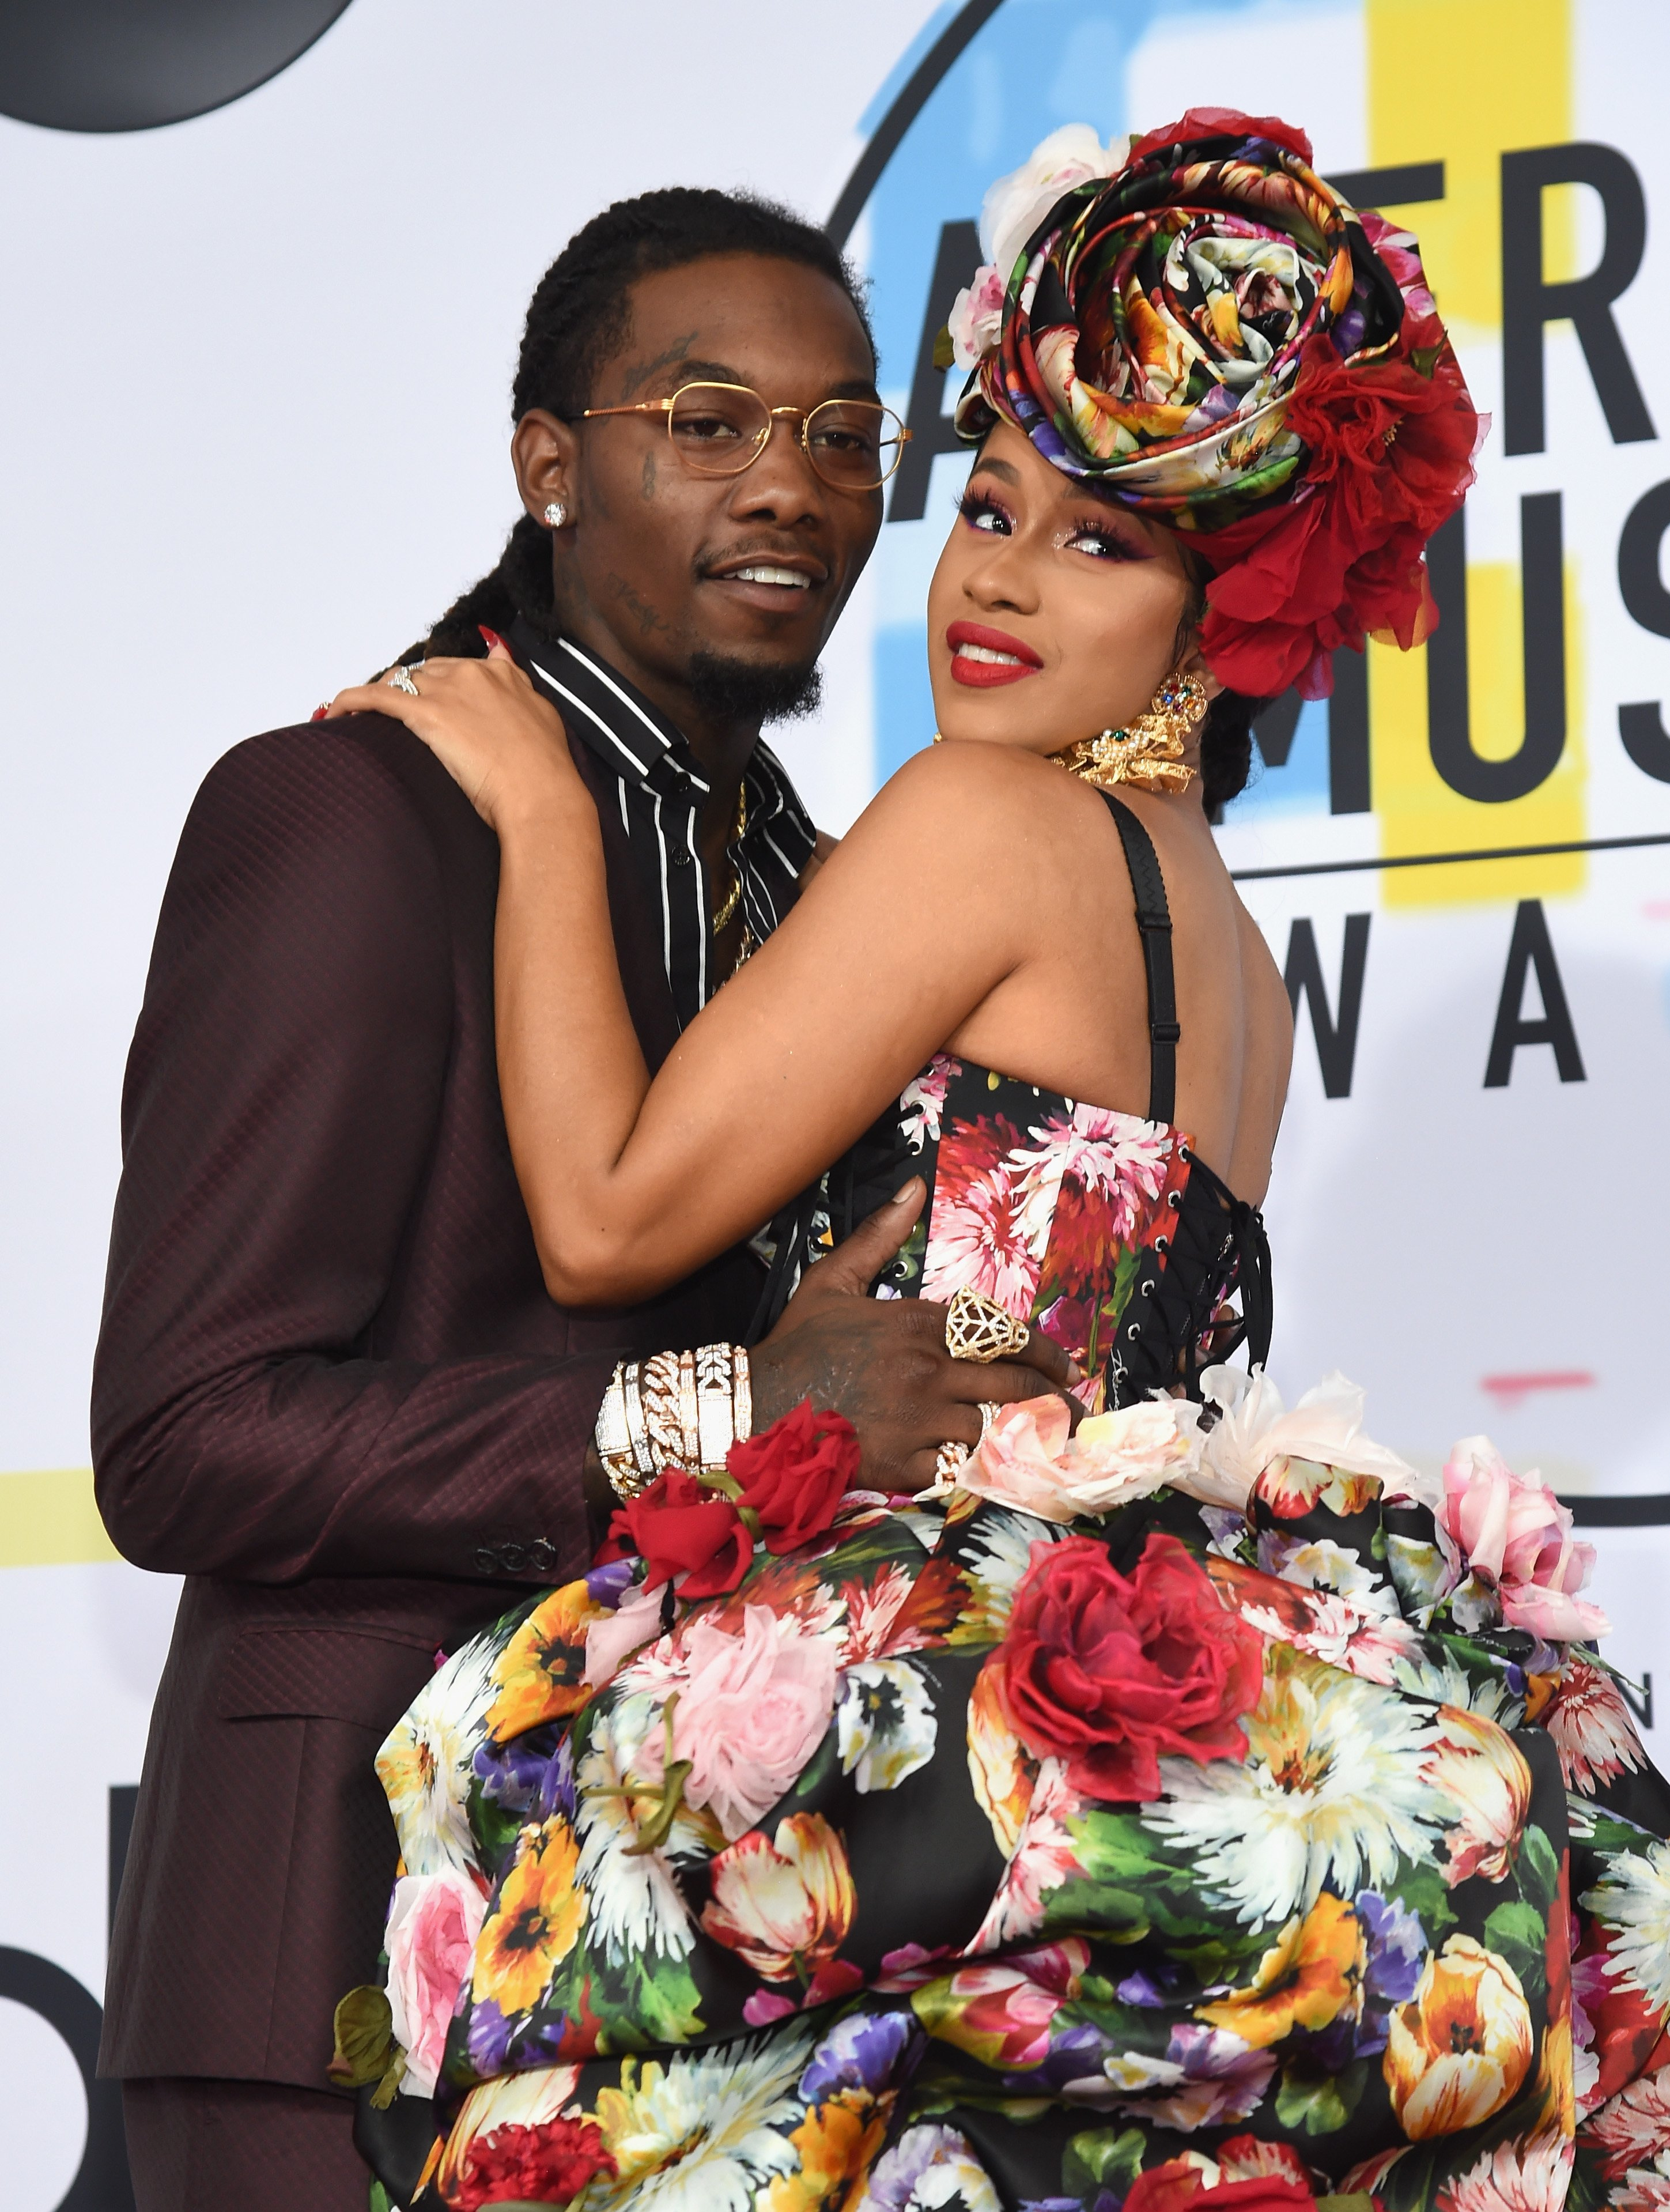 Offset and Cardi B at the 2018 American Music Awards on October 9, 2018 at Microsoft Theater | Photo: Getty Images